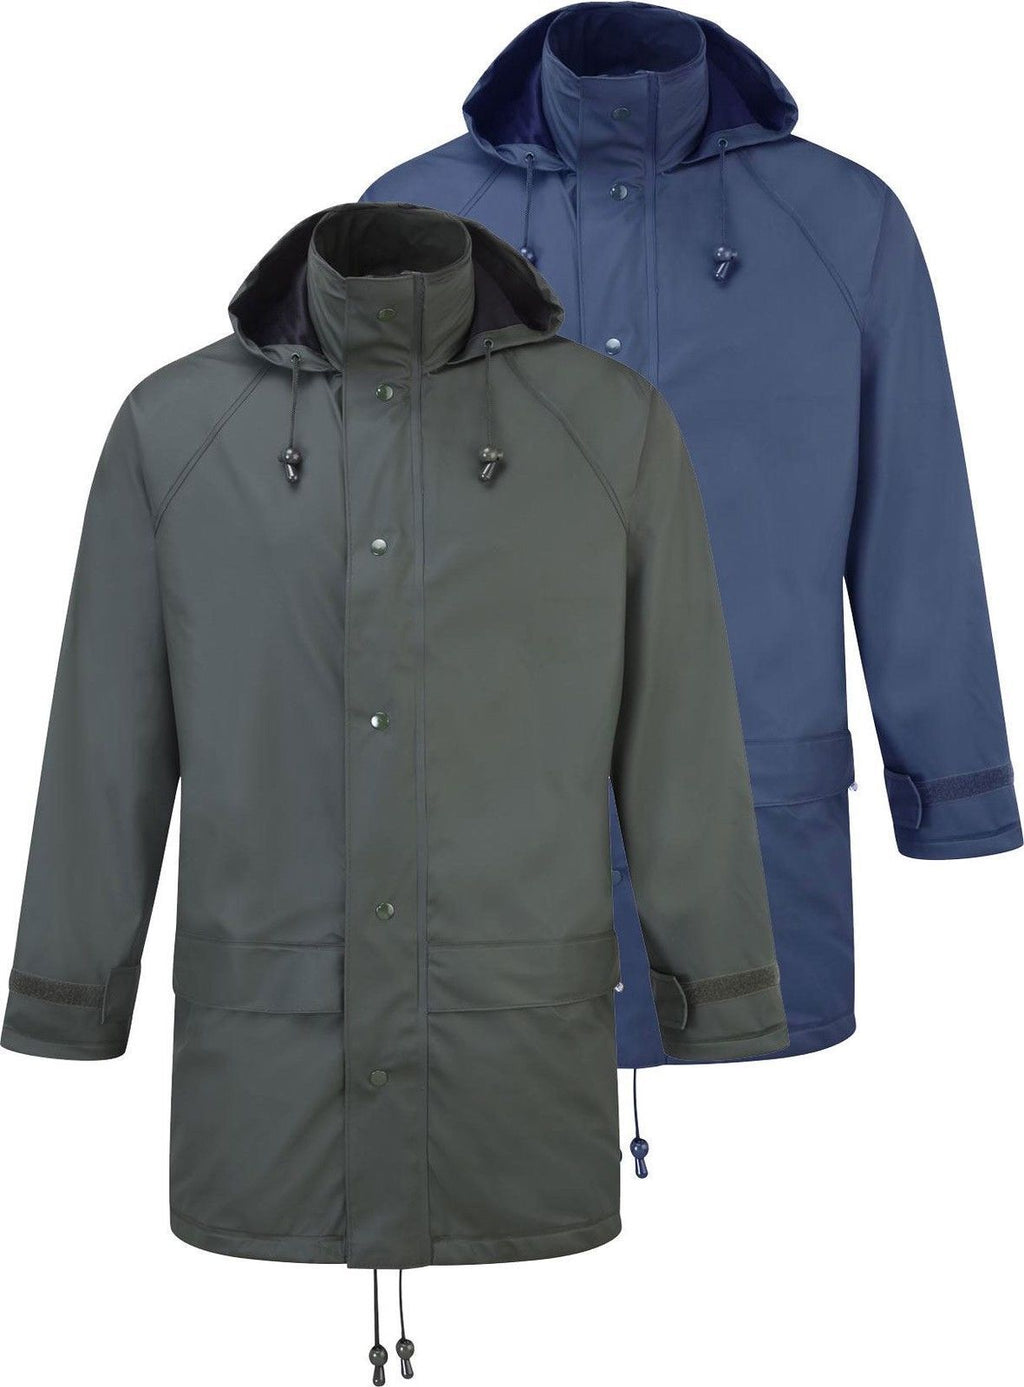 Rain Jacket - Fortress Fortex Men's - Waterproof, Windproof, Lightweight, Flexible, Silent